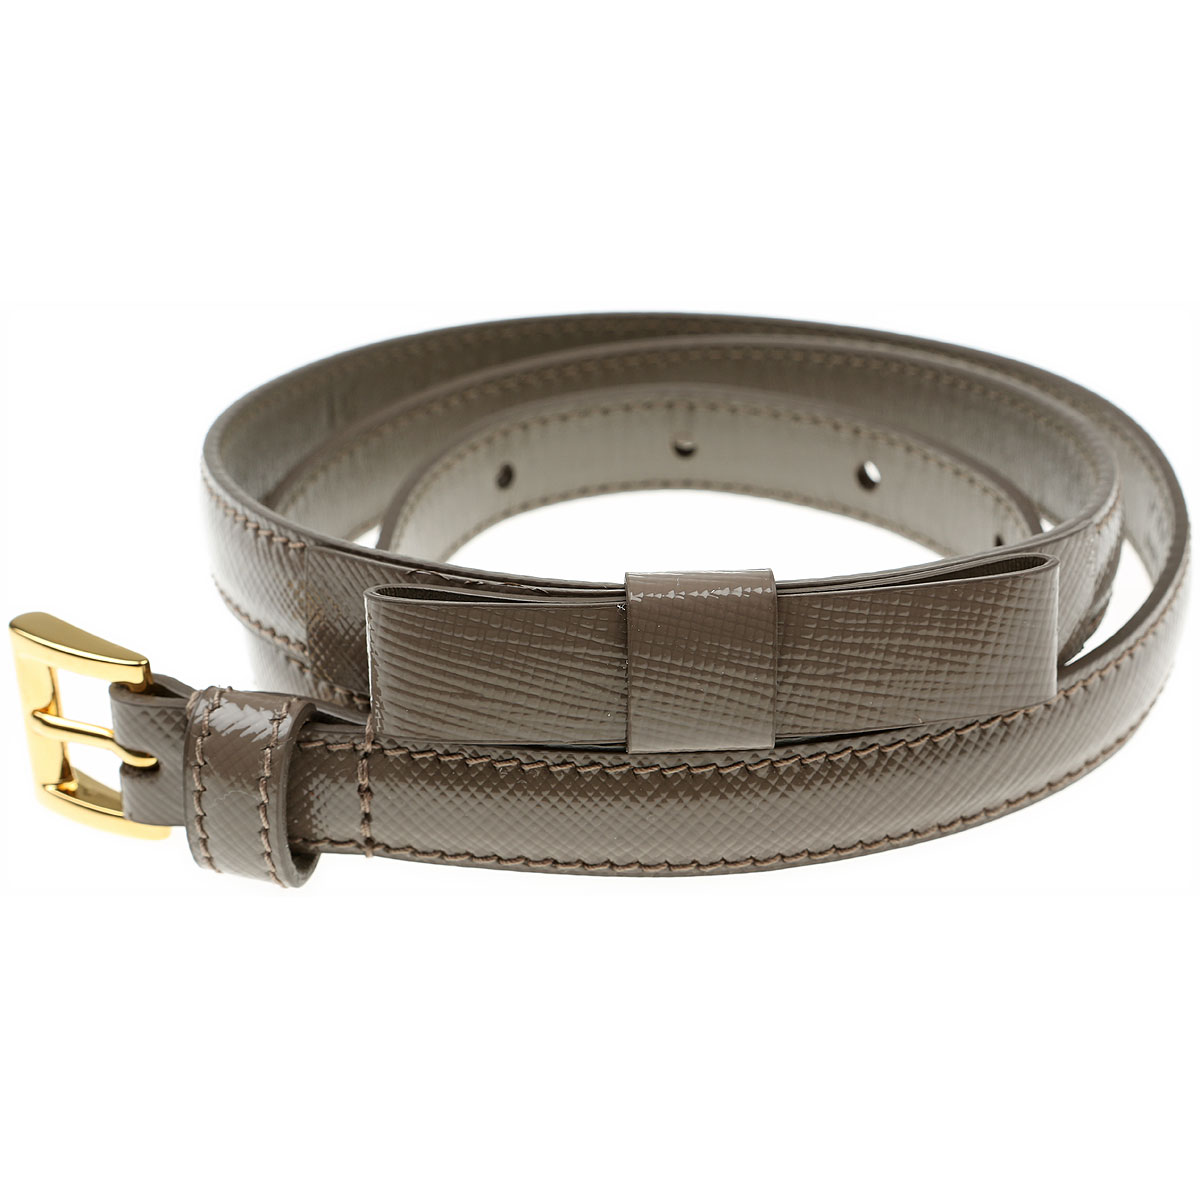 Prada Belt for Women in Outlet Clay USA - GOOFASH